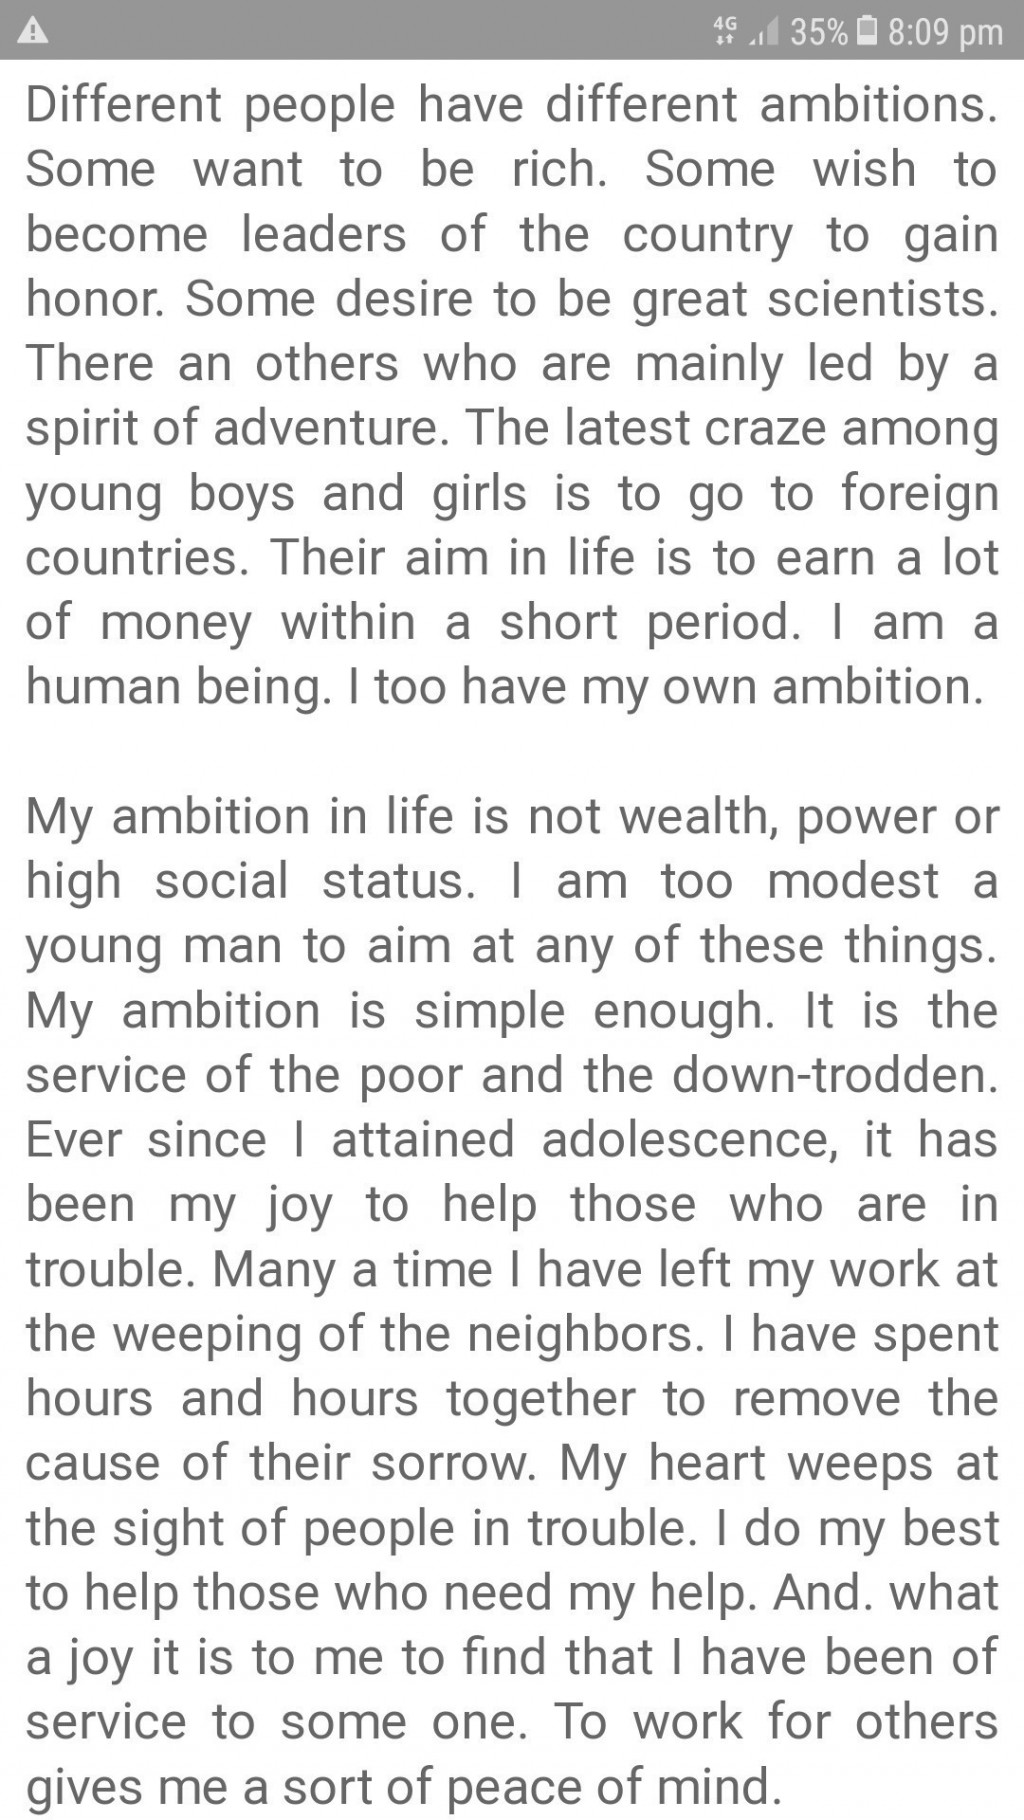 008 Essay Example Of Ambition Awesome On Lady Macbeth's Short My Life To Become A Pilot Large